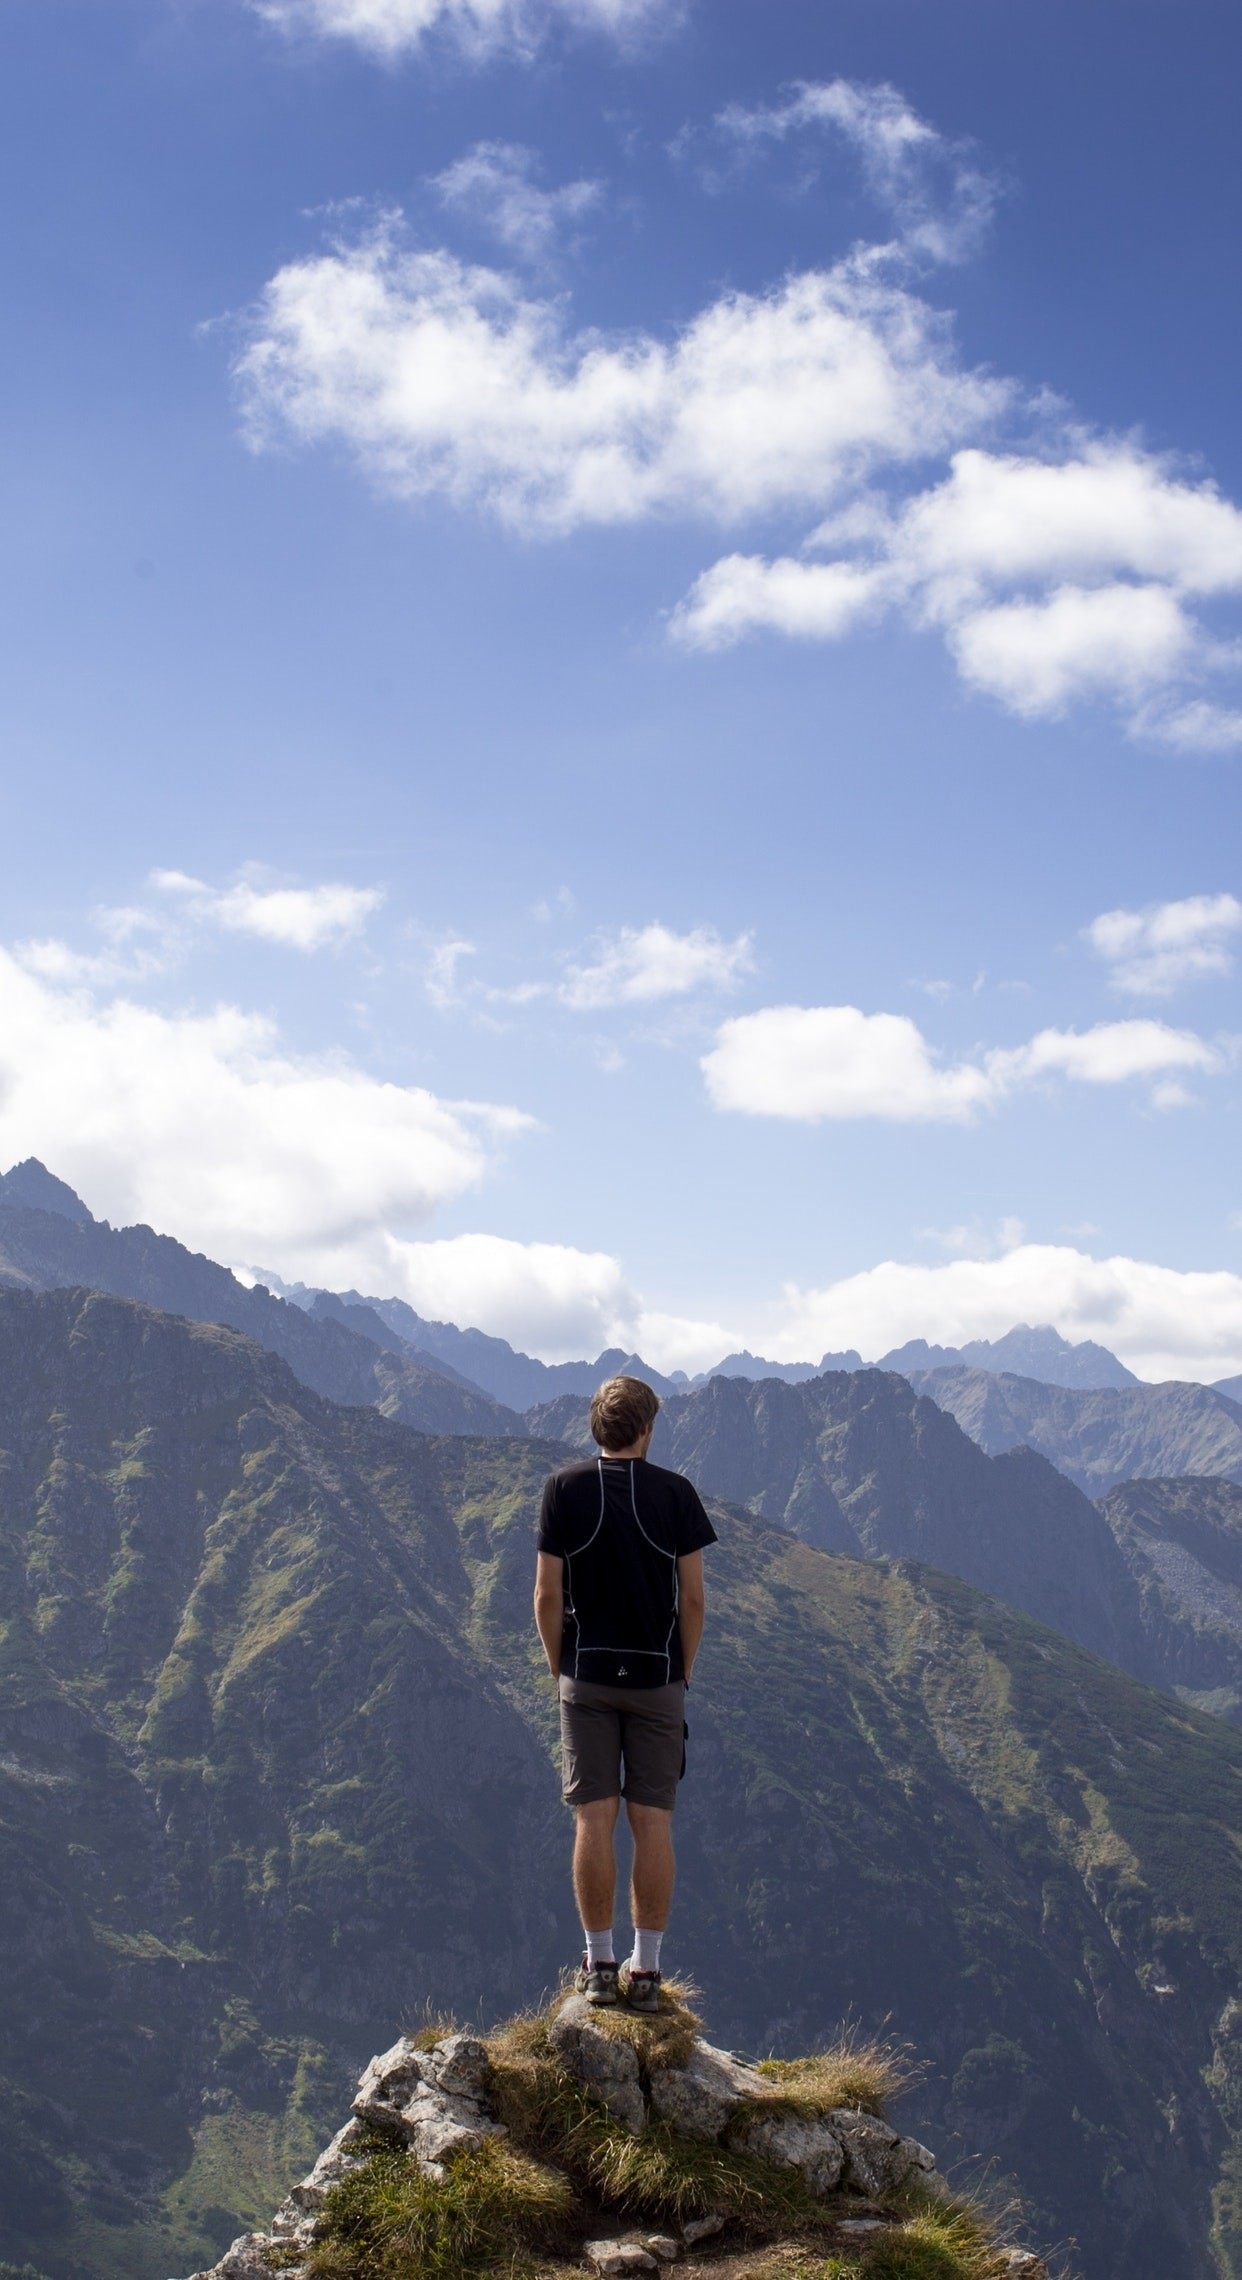 man in black shirt and gray shorts standing on cliff under white and blue cloudy  sky iPhone 7 wallpaper